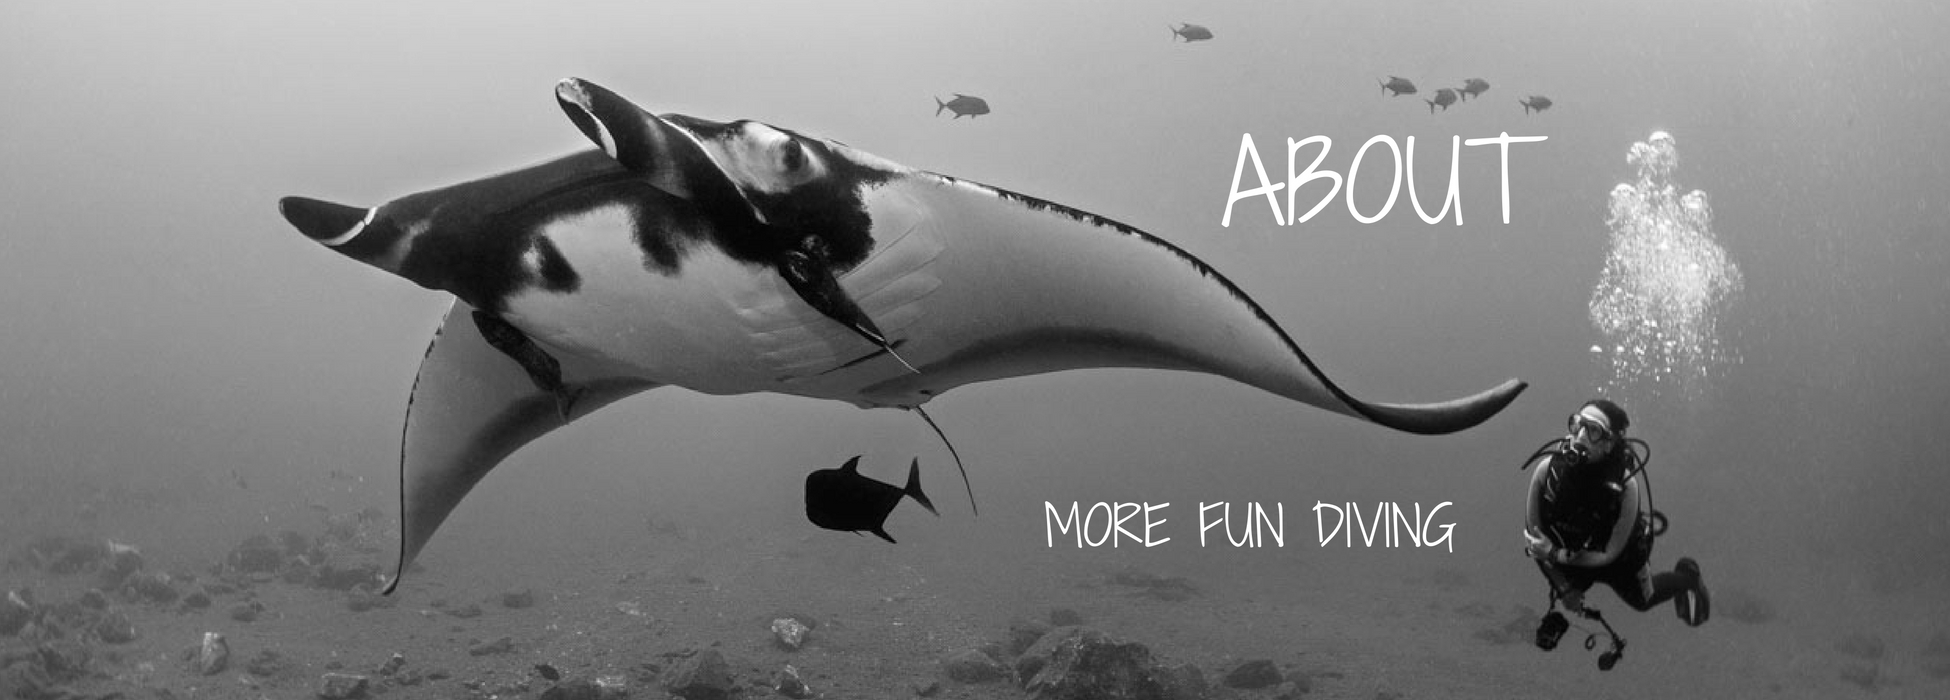 about morefundiving